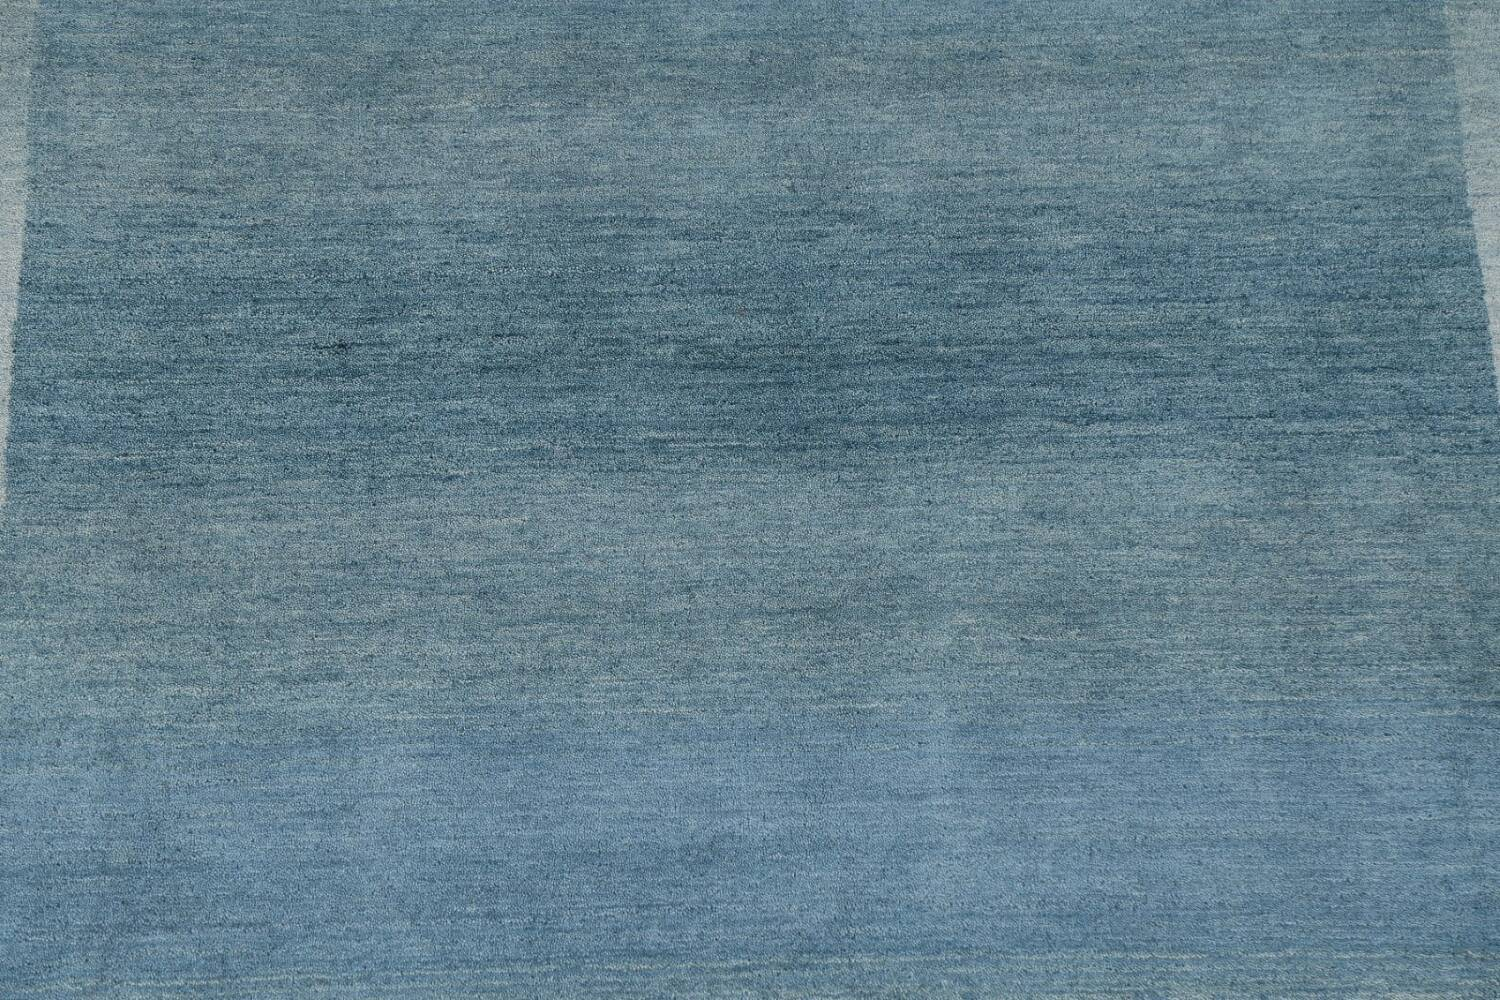 Contemporary Gabbeh Wool Area Rug 6x9 image 5